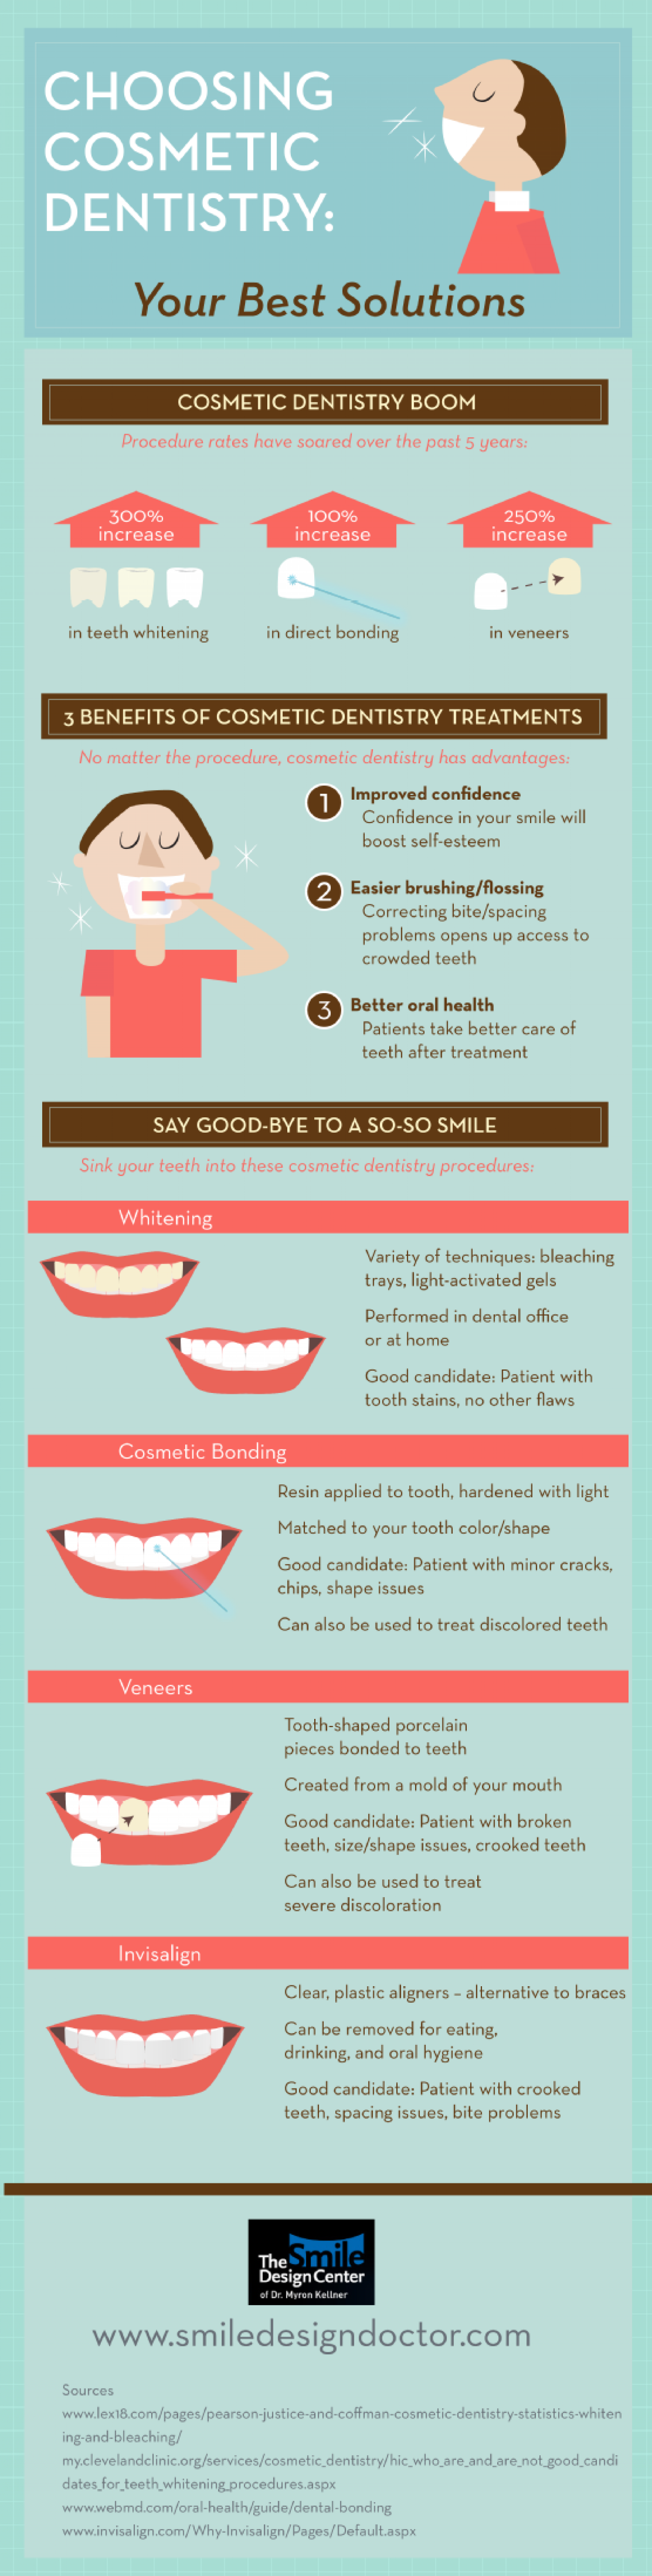 Choosing Cosmetic Dentistry: Your Best Solutions Infographic